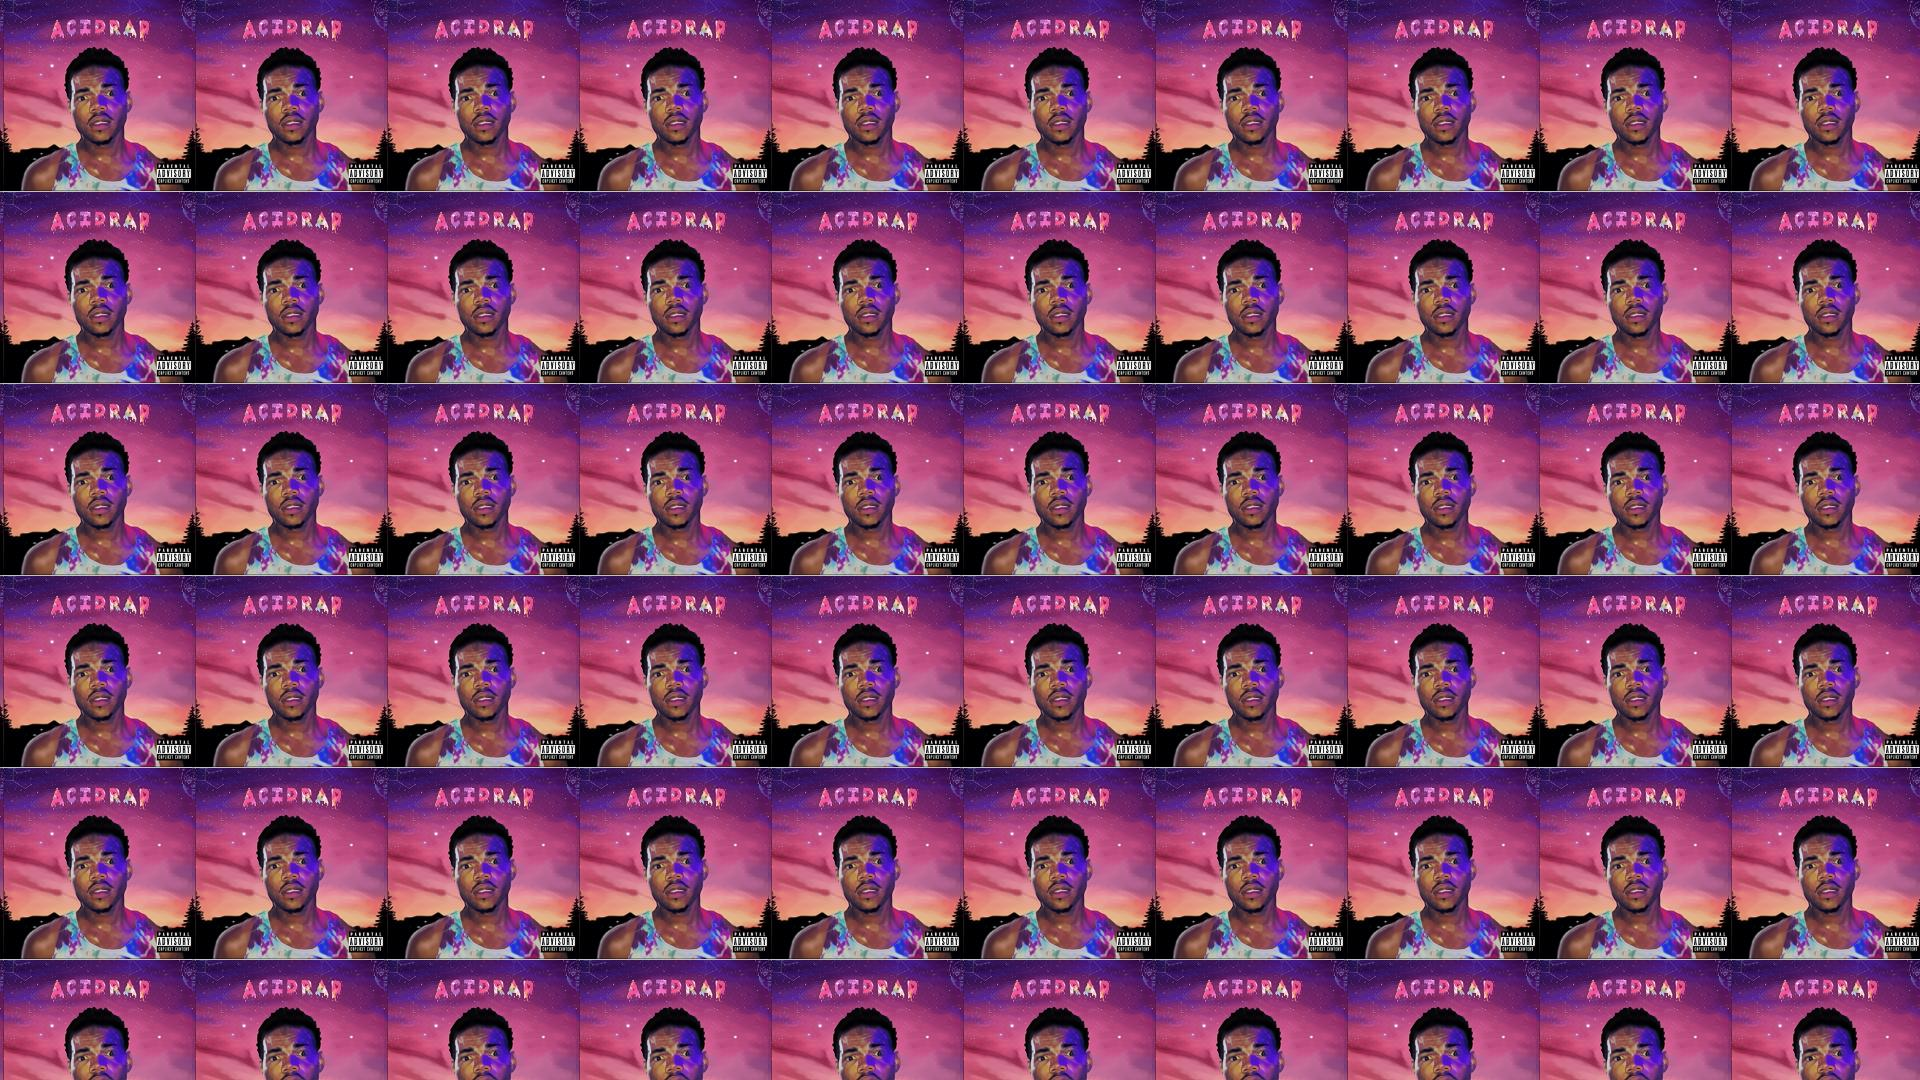 1920x1080 Chance Rapper Acid Rap Wallpaper « Tiled Desktop Wallpaper